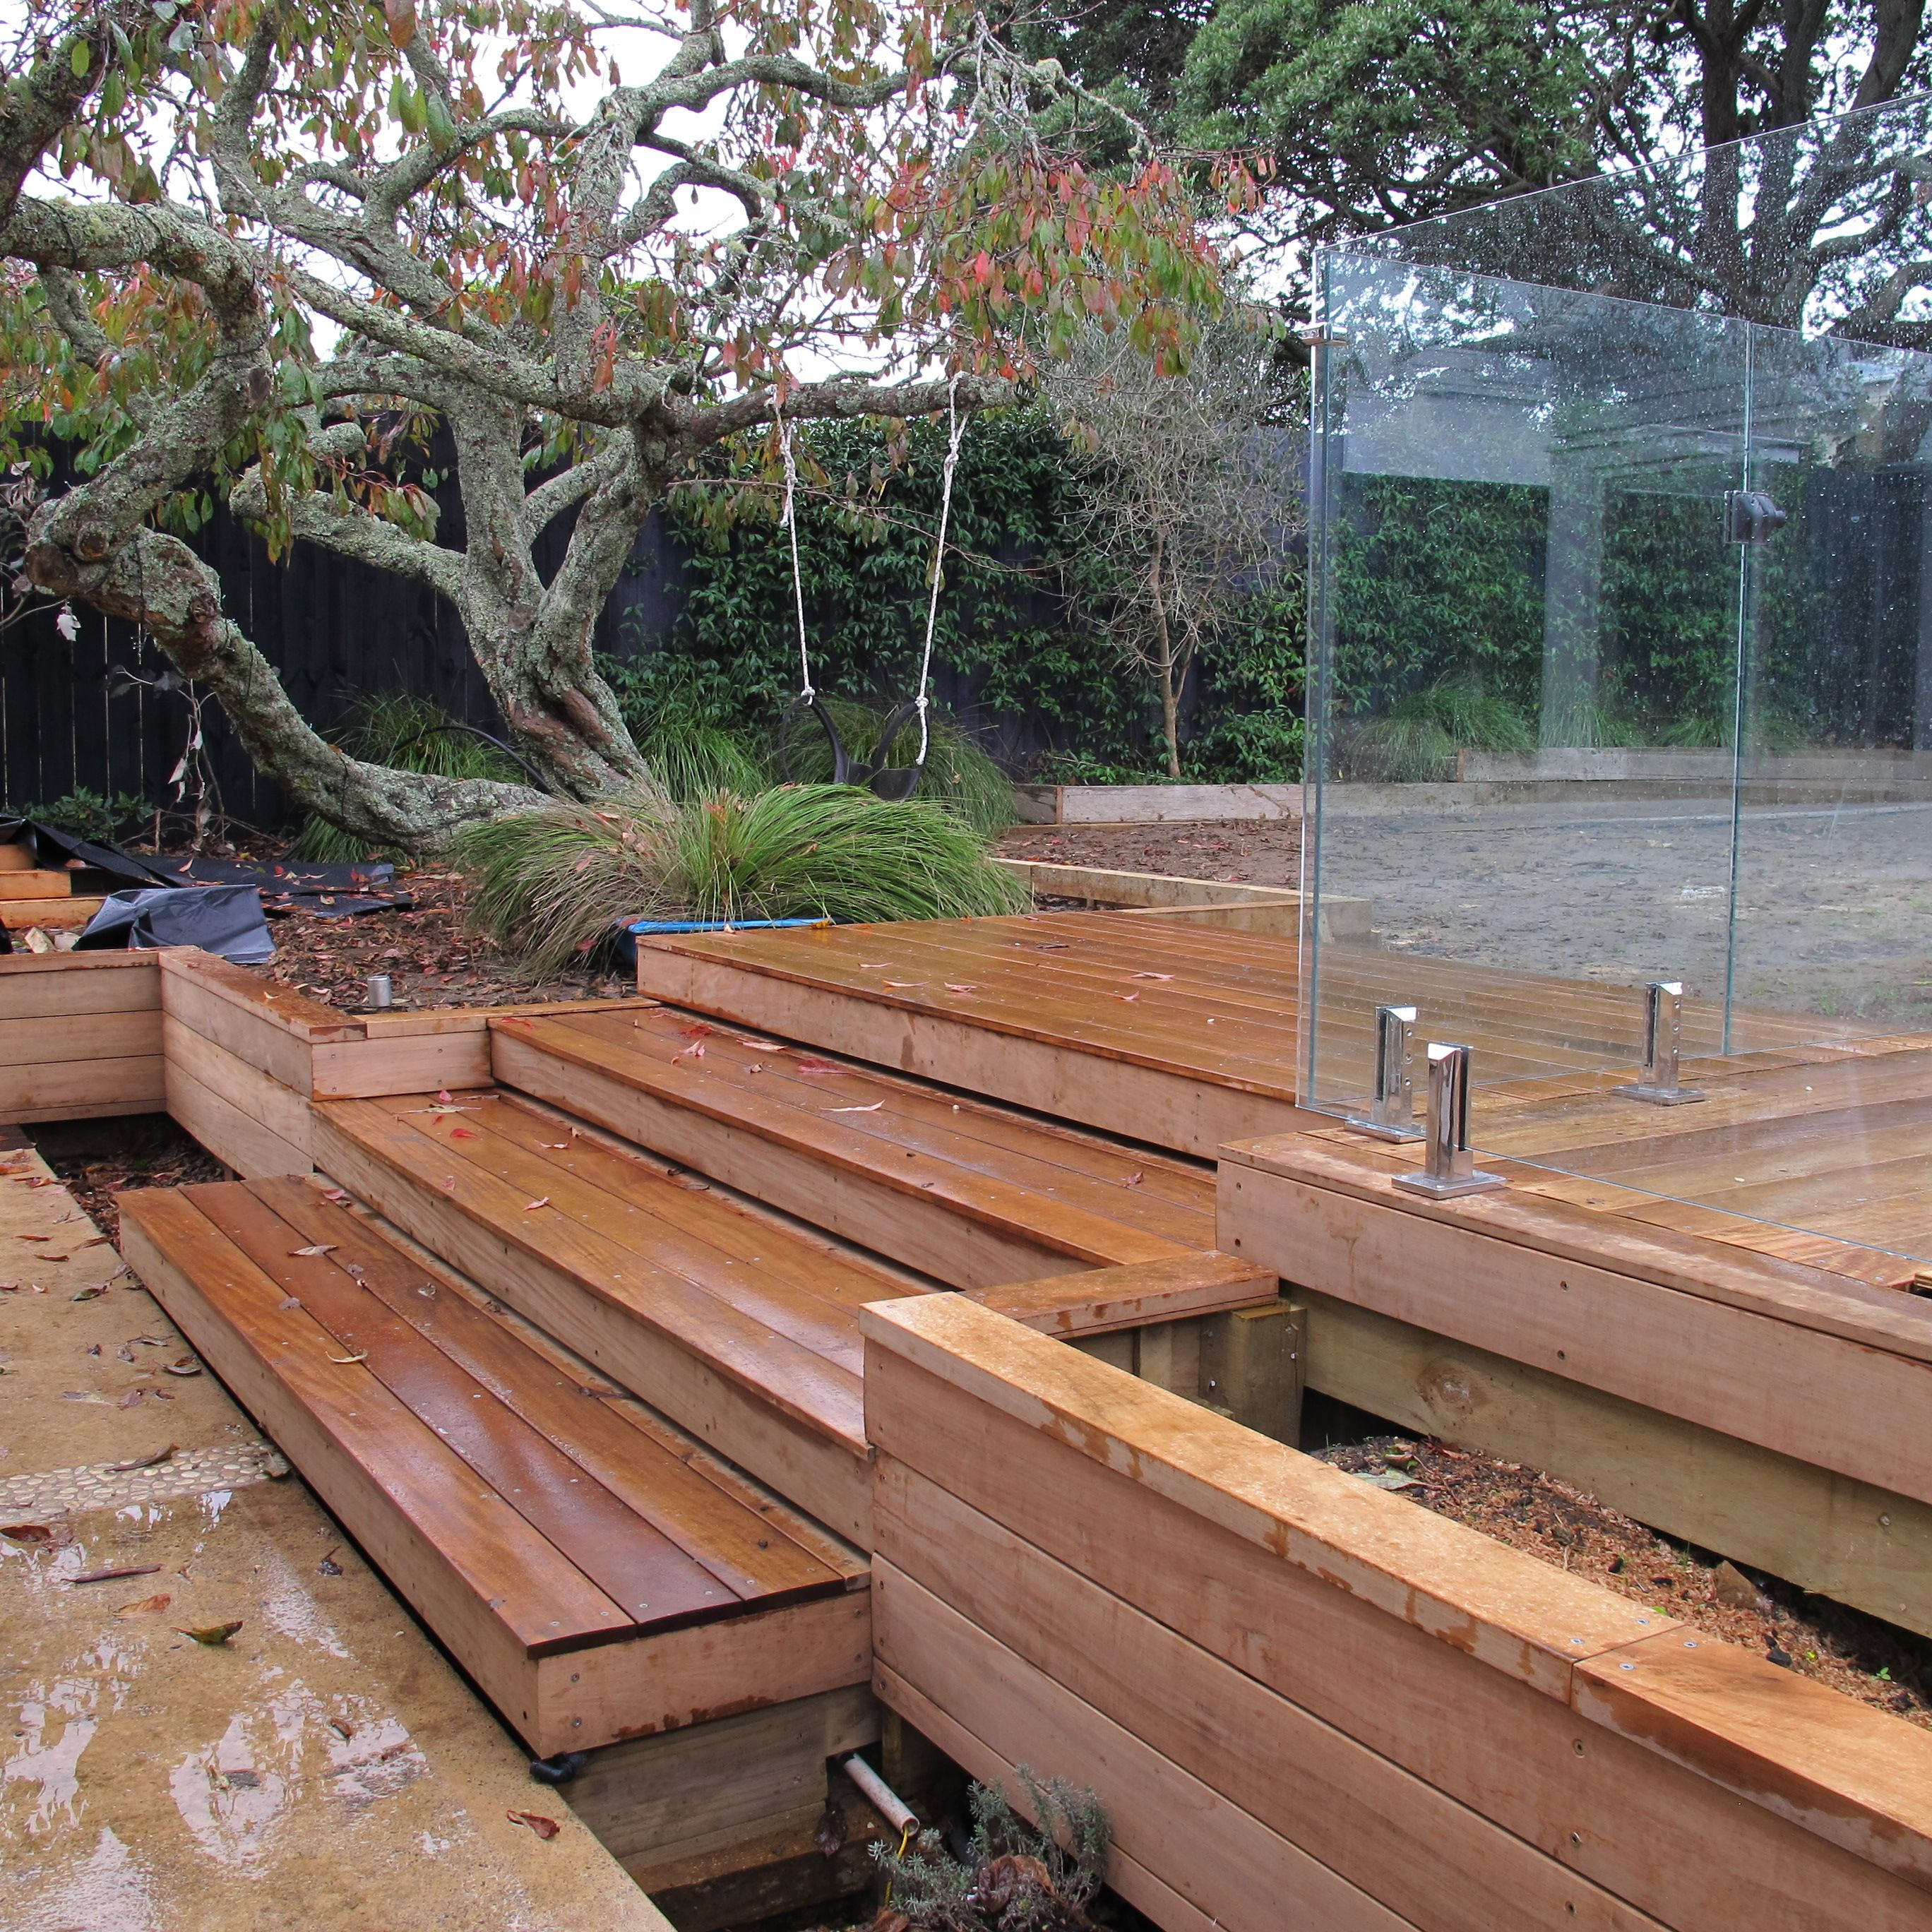 Timber Retaining Wall Steps And Planter Faced With Vitex Garden Retaining Wall Wood Garden Edging Garden Steps